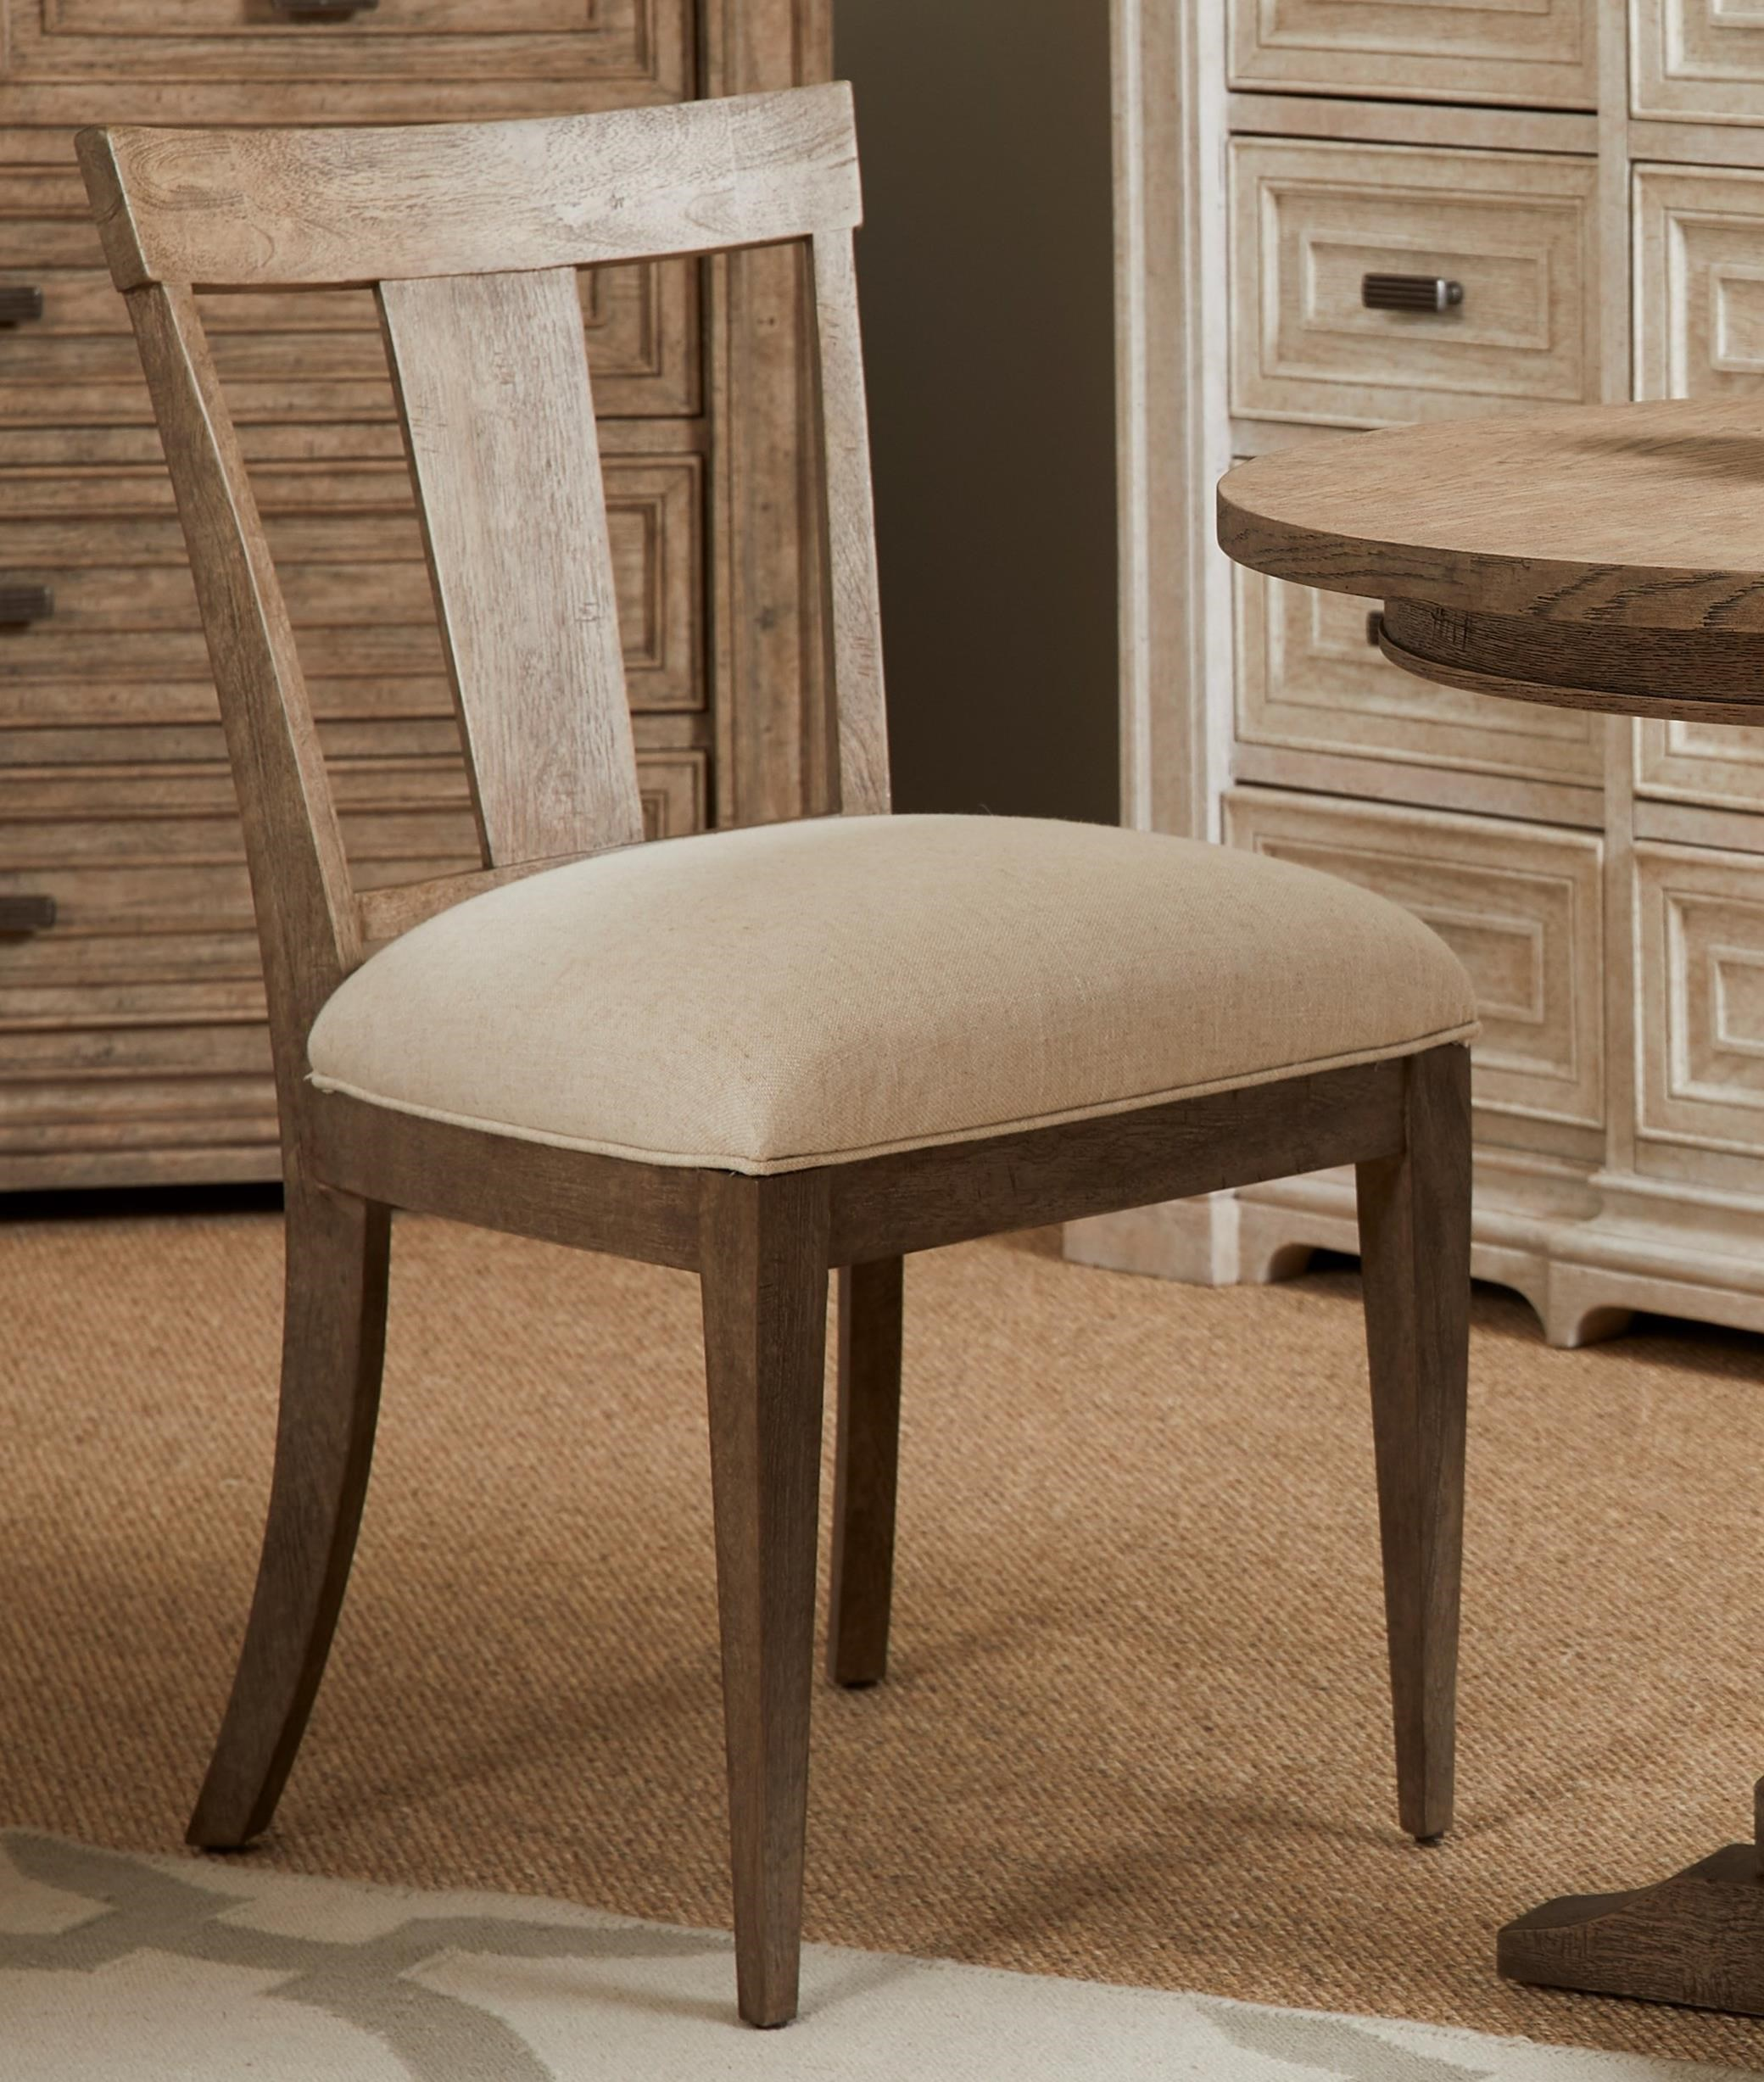 Portico Bistro Chair by Stanley Furniture at Alison Craig Home Furnishings